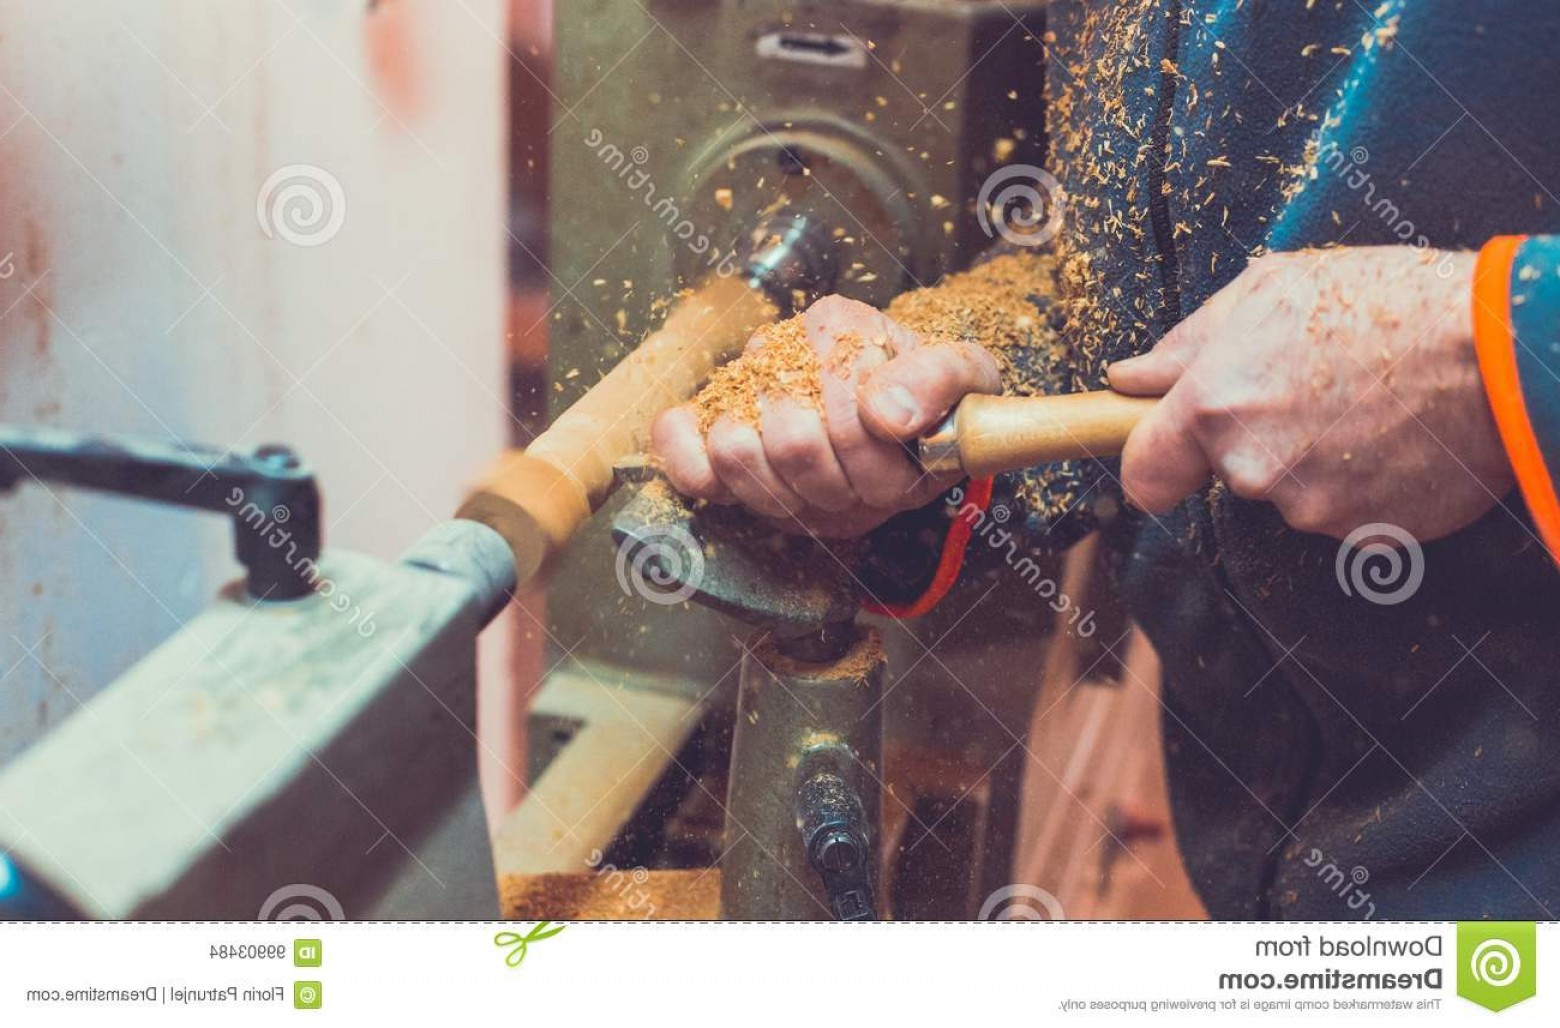 Hand Lathe Vector: Man S Hands Hold Chisel Near Lathe Man Working Small Wood Lathe Artisan Carves Piece Wood Using Manual Lathe Man S Image